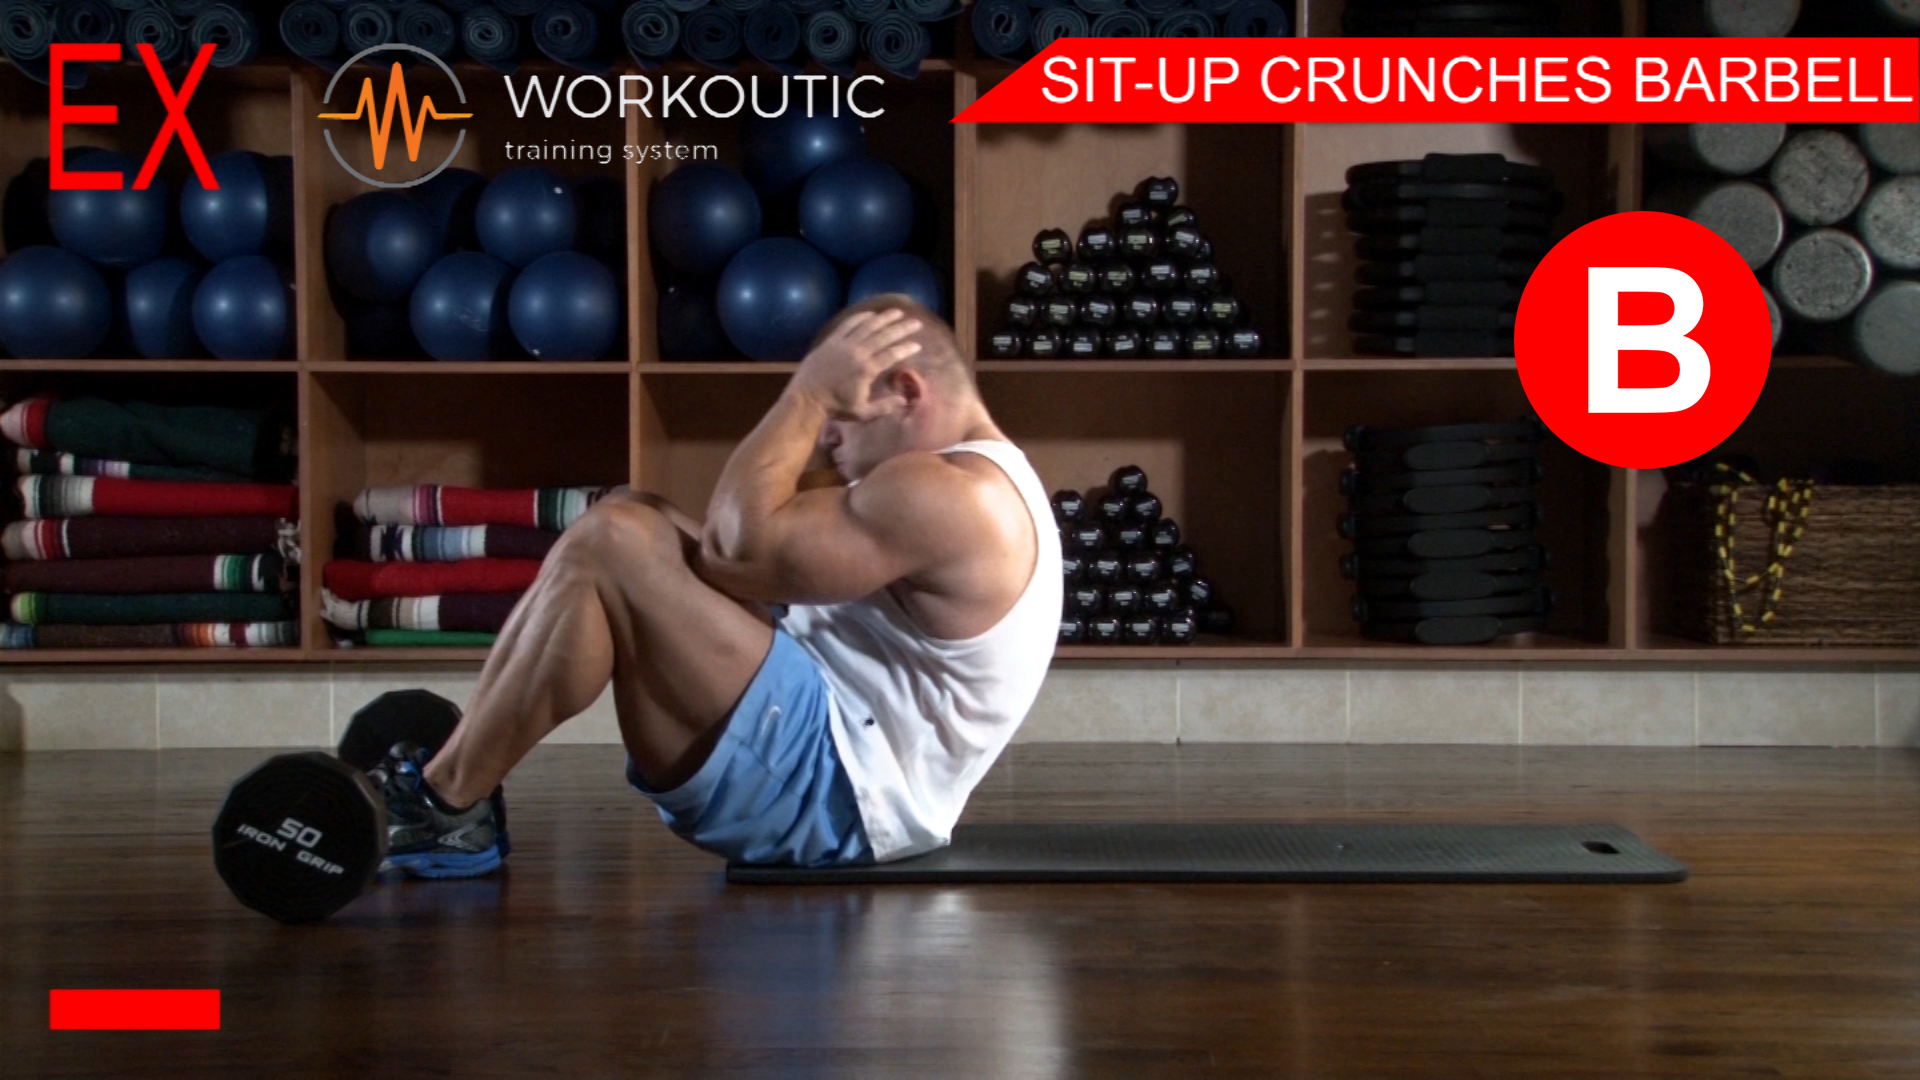 Abs Exercises - Workutic - 6 pack special - Sit-Up Crunches with Leg Support Exhale